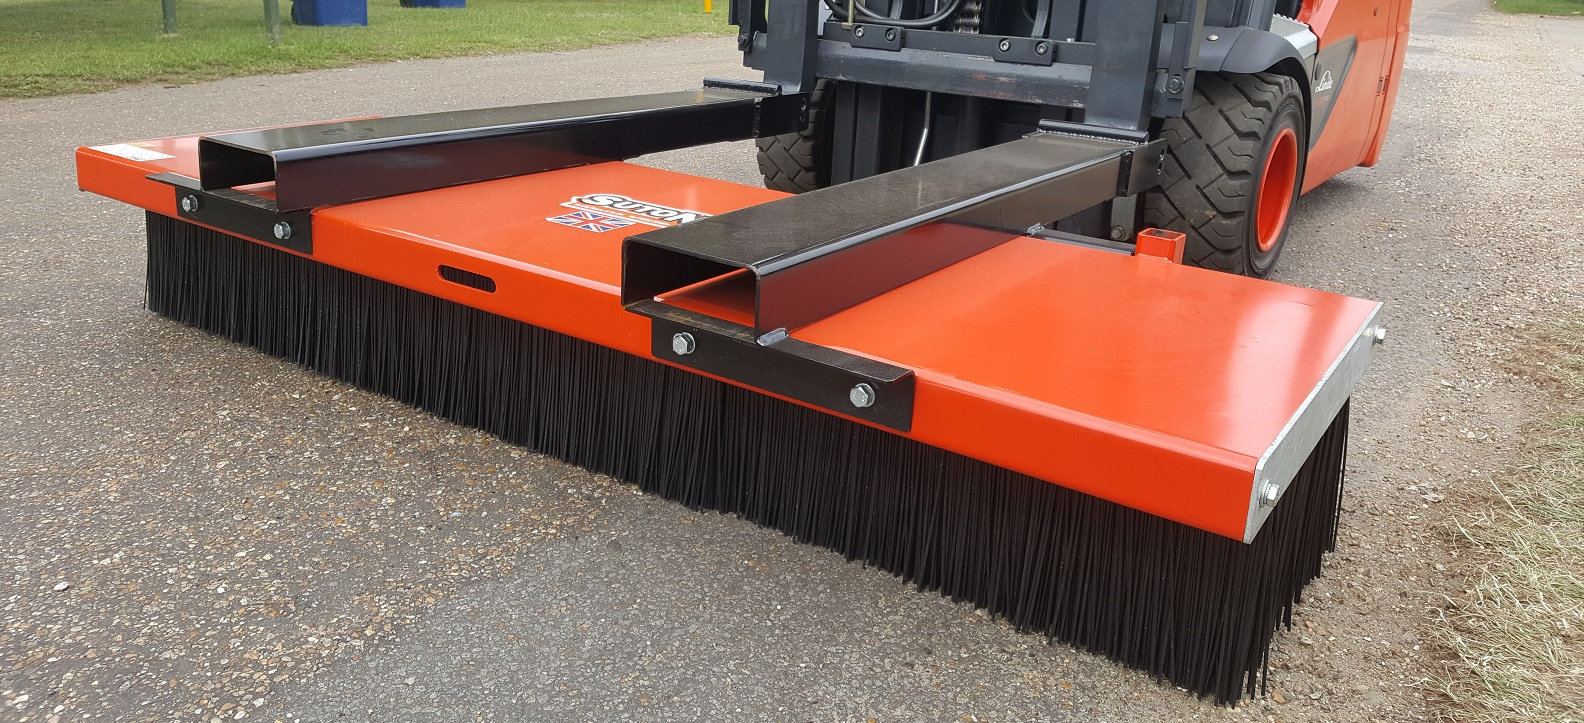 Broomaster Forklift Broom Attachment